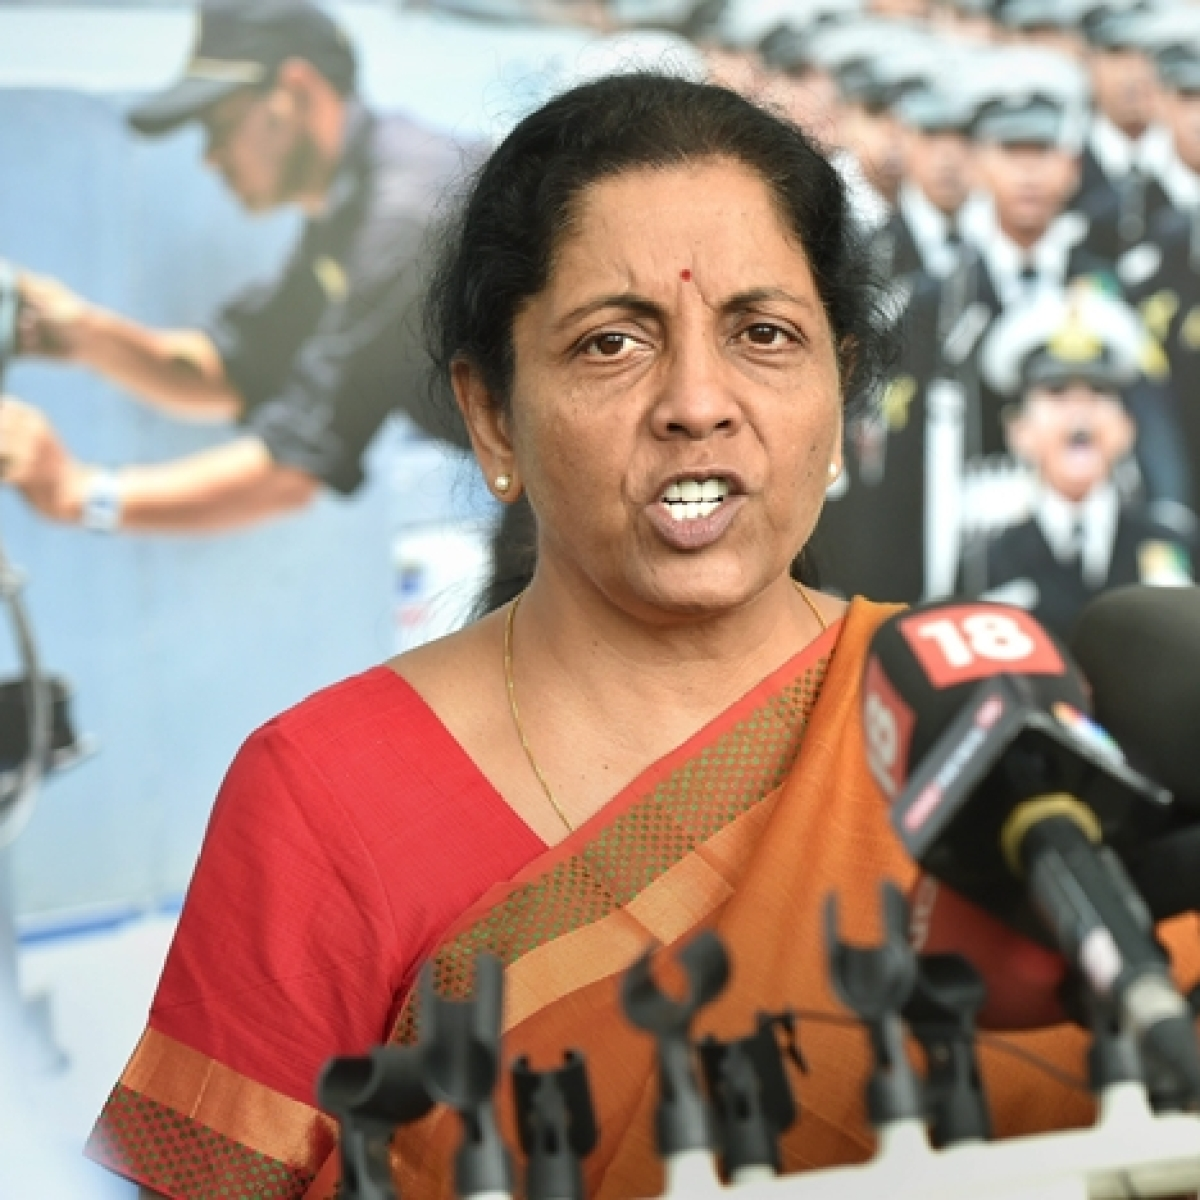 'Budget 2020 provides discreet and considered stimulus': Nirmala Sitharaman addresses industrialists in Mumbai